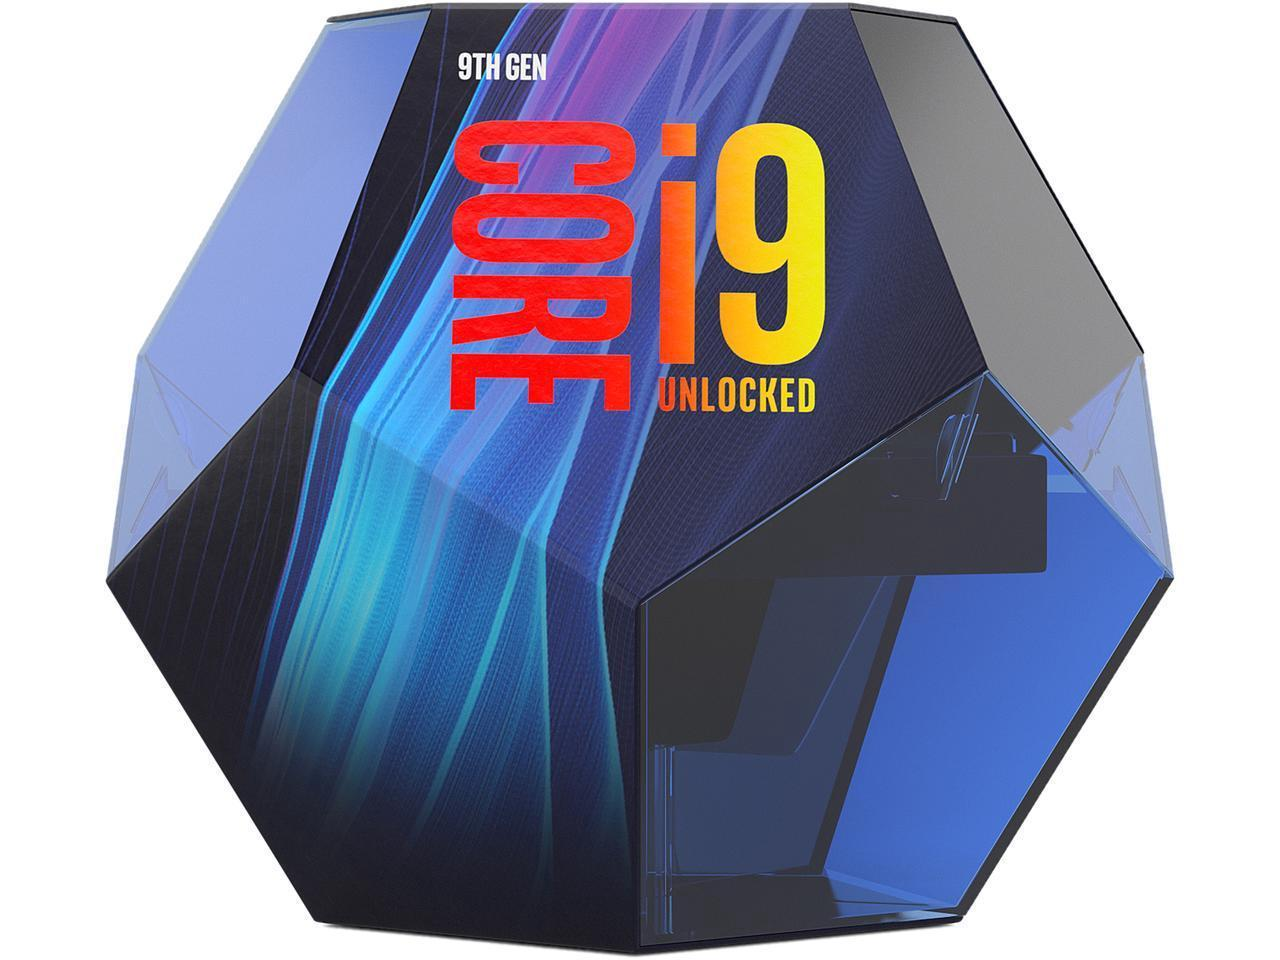 Процесор Intel Coffee Lake Core i9-9900K 3.60GHz (up to 5.00GHz), 16MB, 95W,  LGA1151 (300 Series)